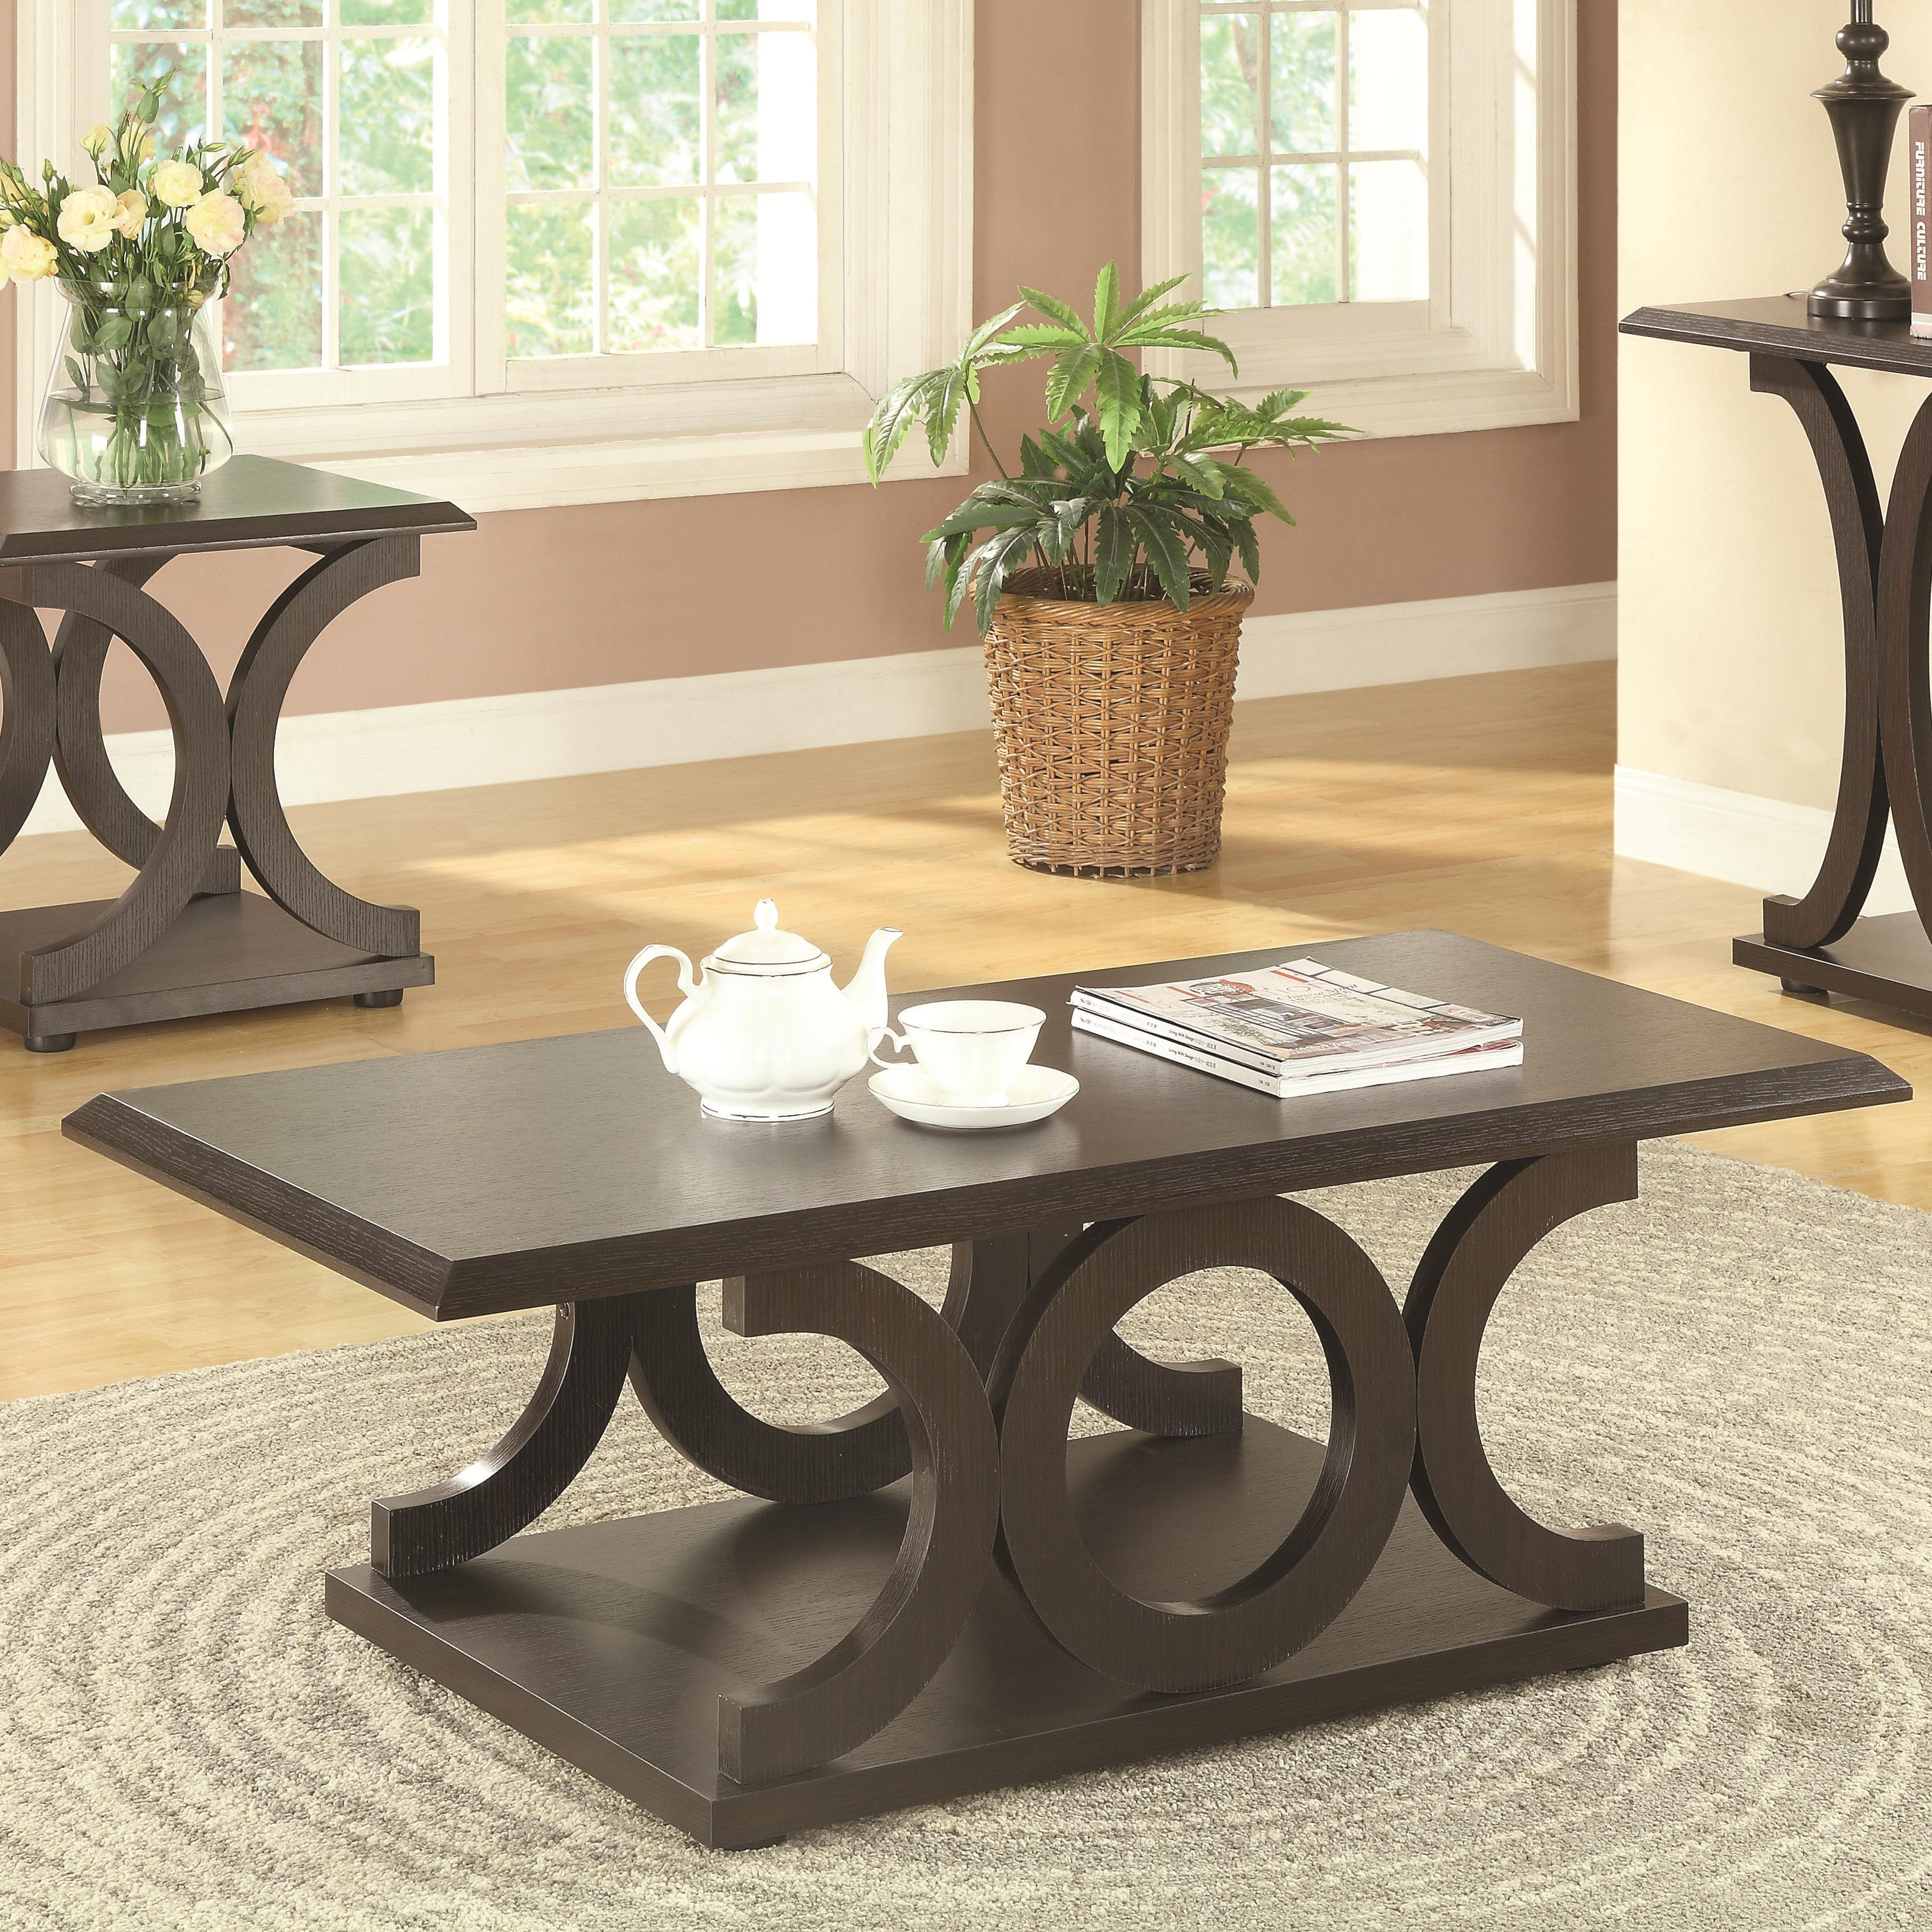 703148 c-shaped coffee table